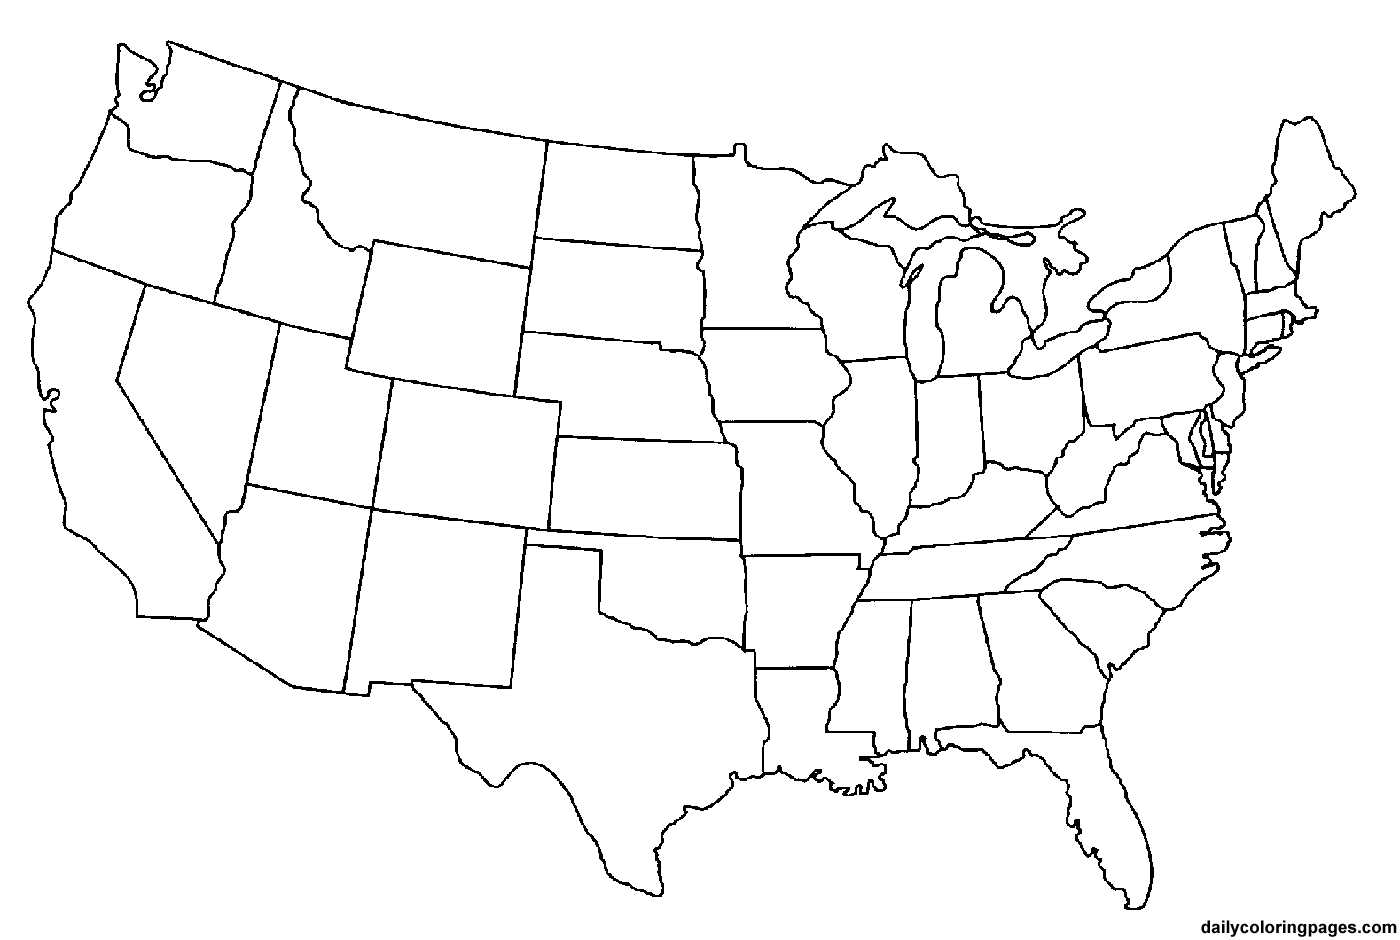 coloring page map of the united states us map coloring pages best coloring pages for kids the map page coloring united states of